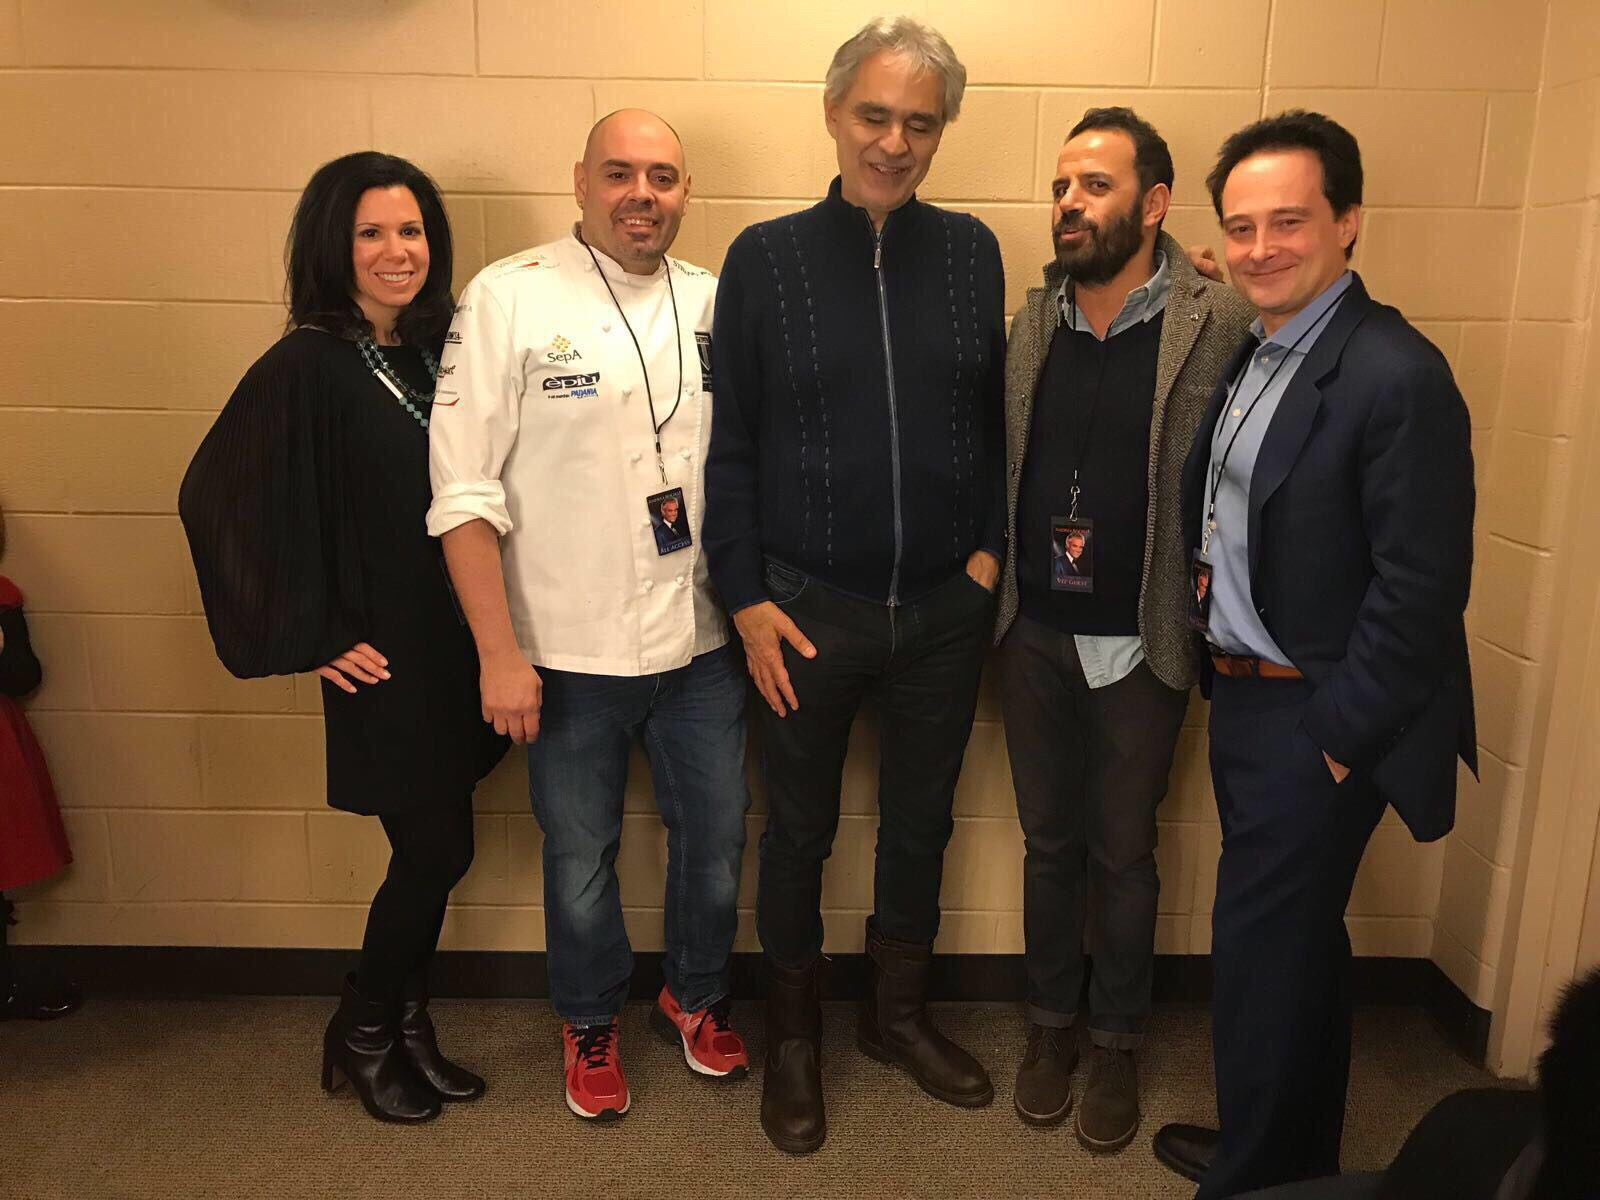 Andrea Bocelli (center) in his his Wells Fargo Center dressing room with (from left) Dawn Tancredi Longo and Gran Caffe L´Aquila owners Stefano Biasini, Michele Morello, and Riccardo Longo.